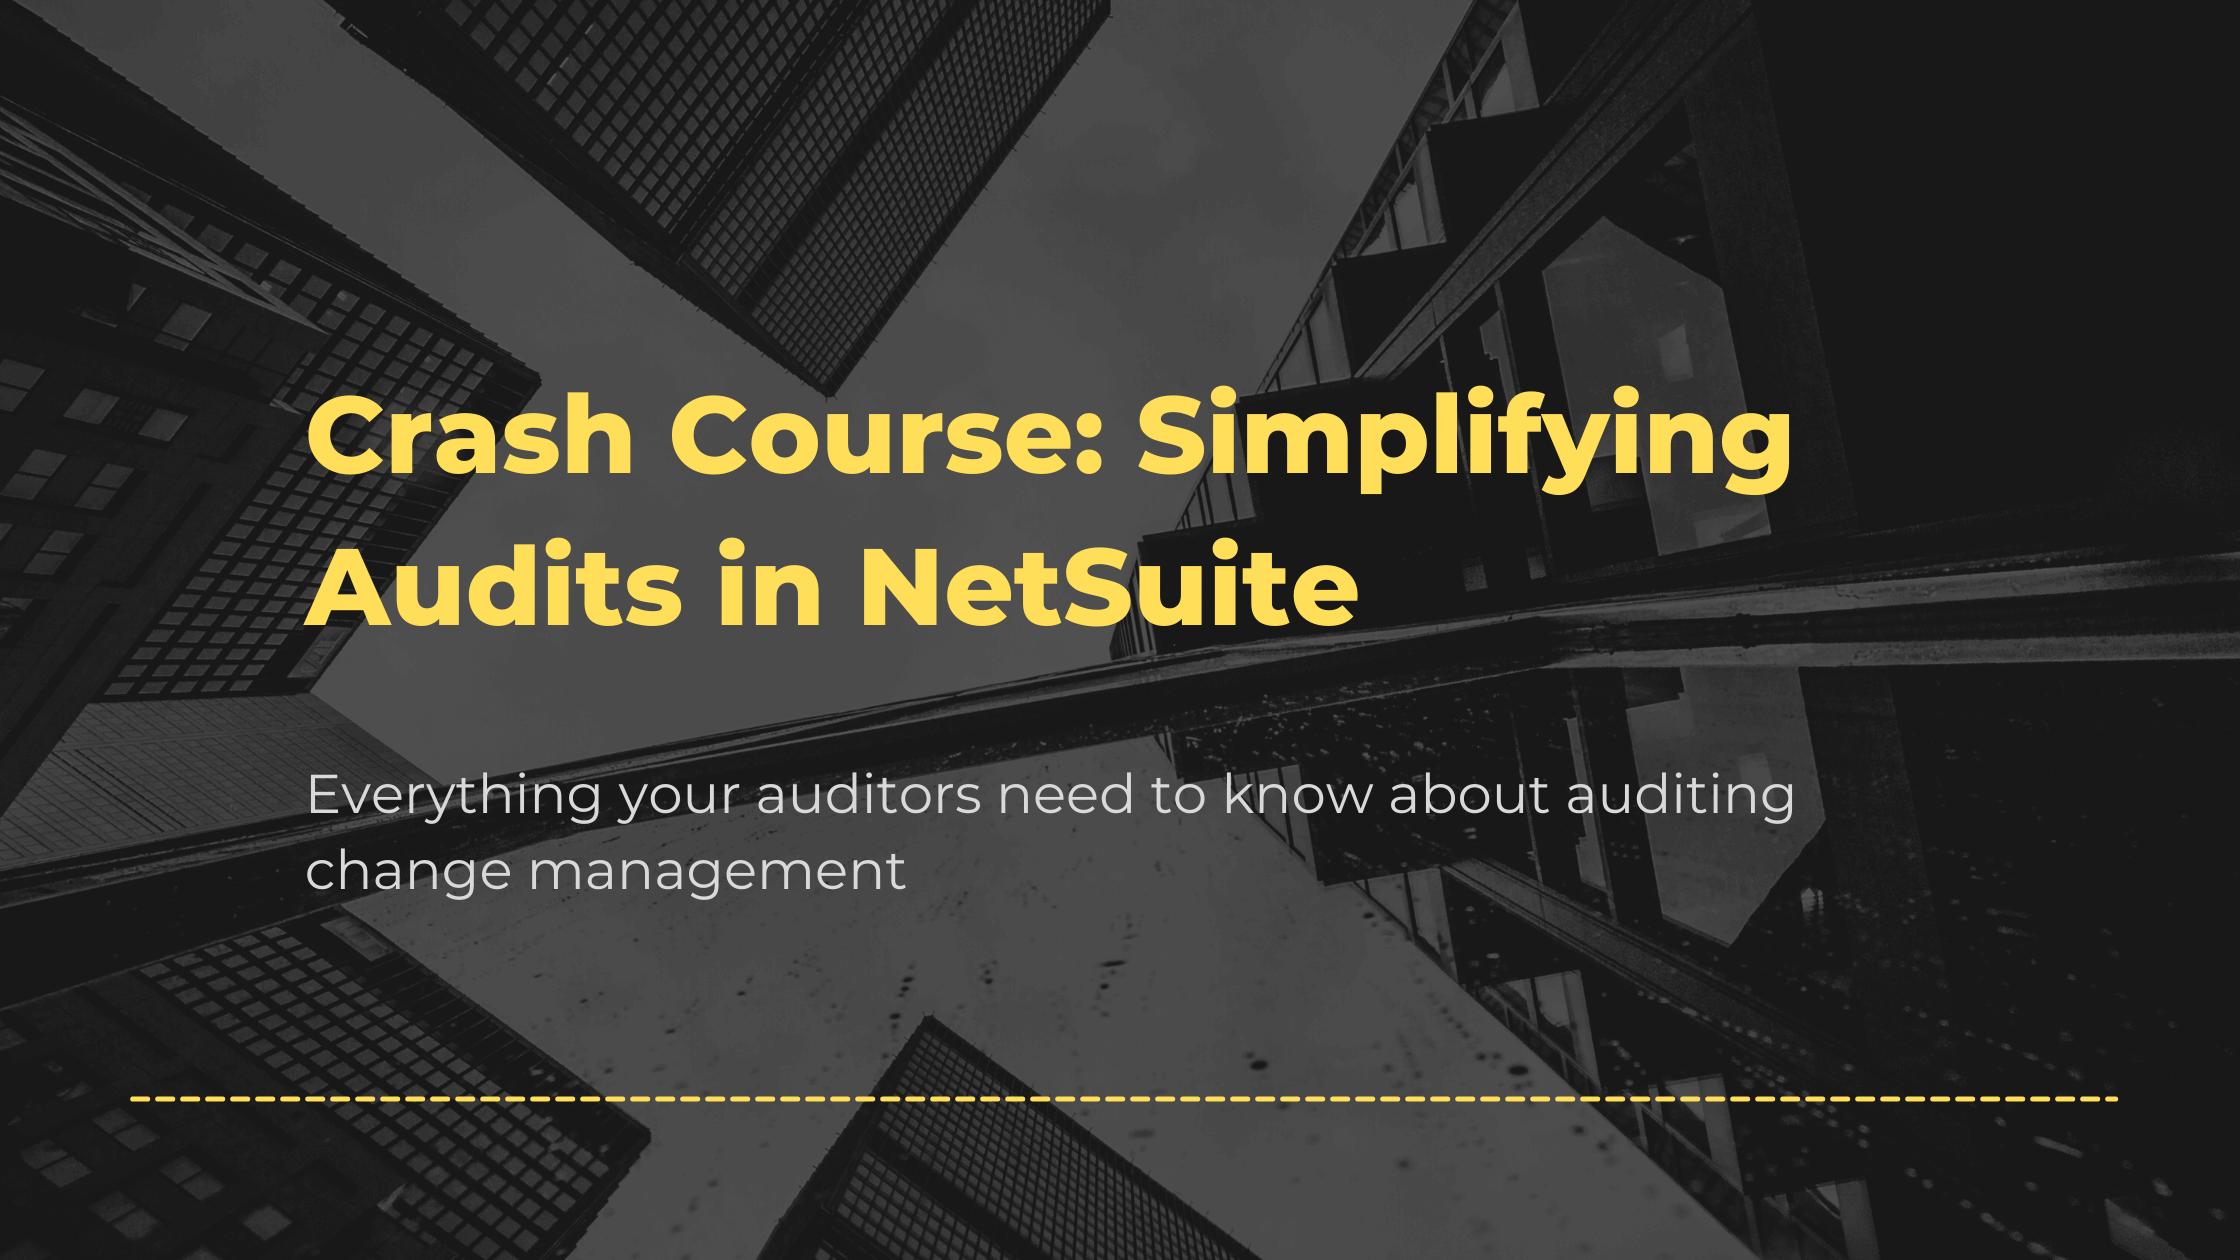 Everything your auditors need to know about auditing change management